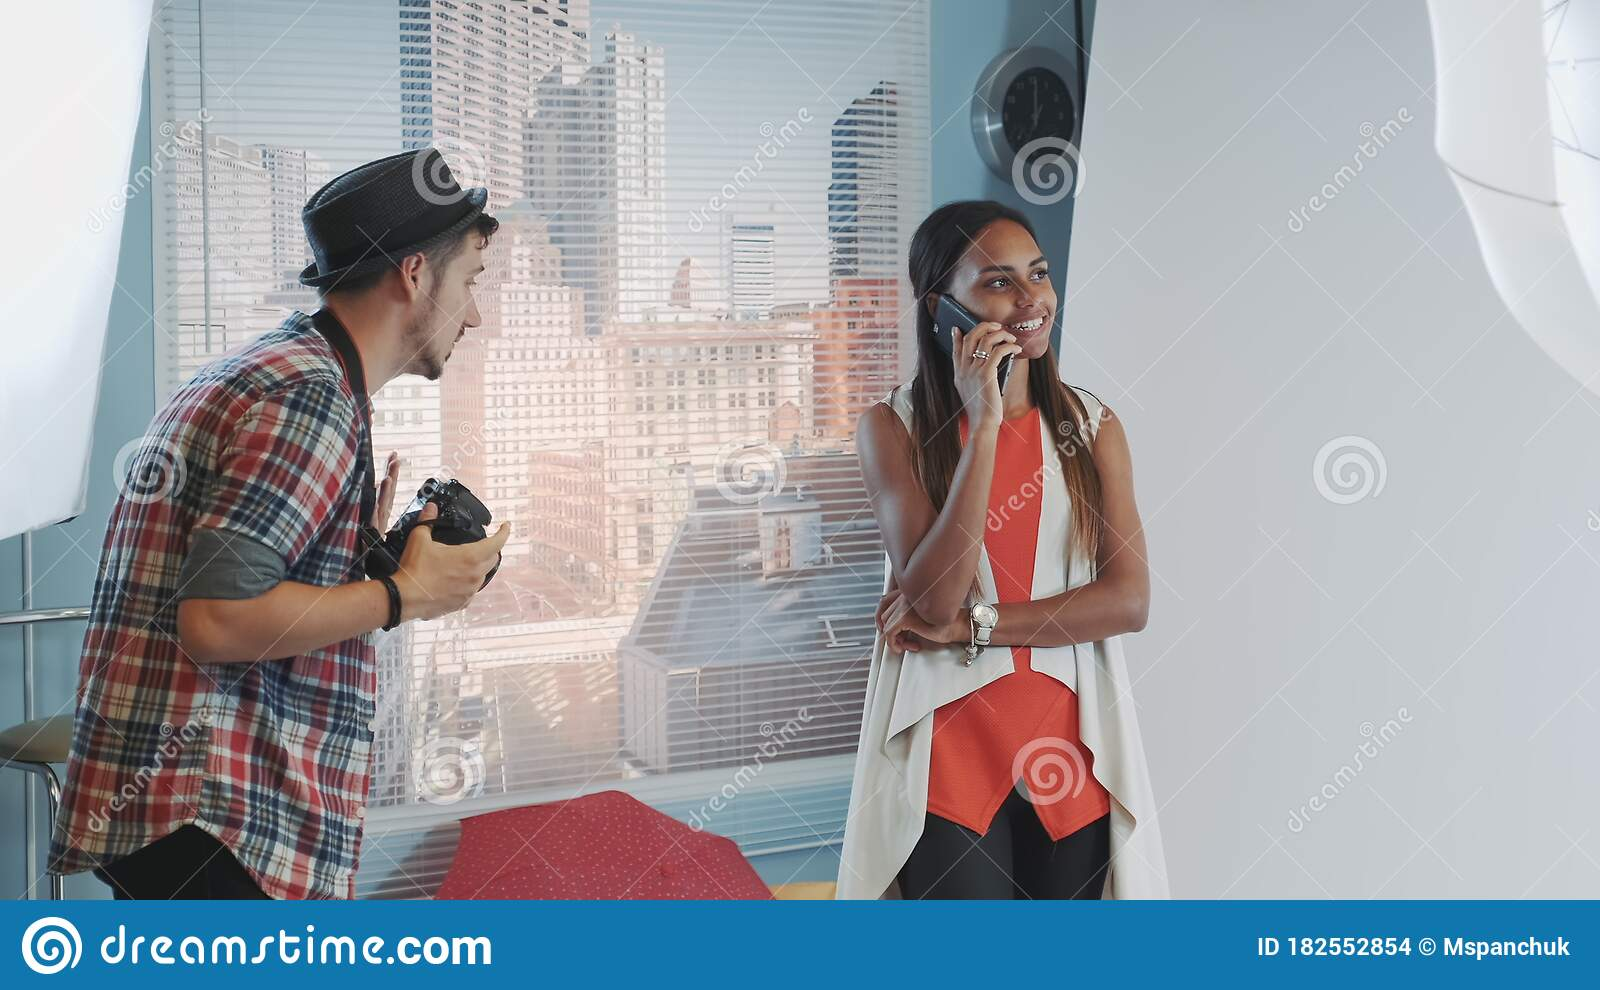 Professional Photographer Asking Model To Stop Talking On